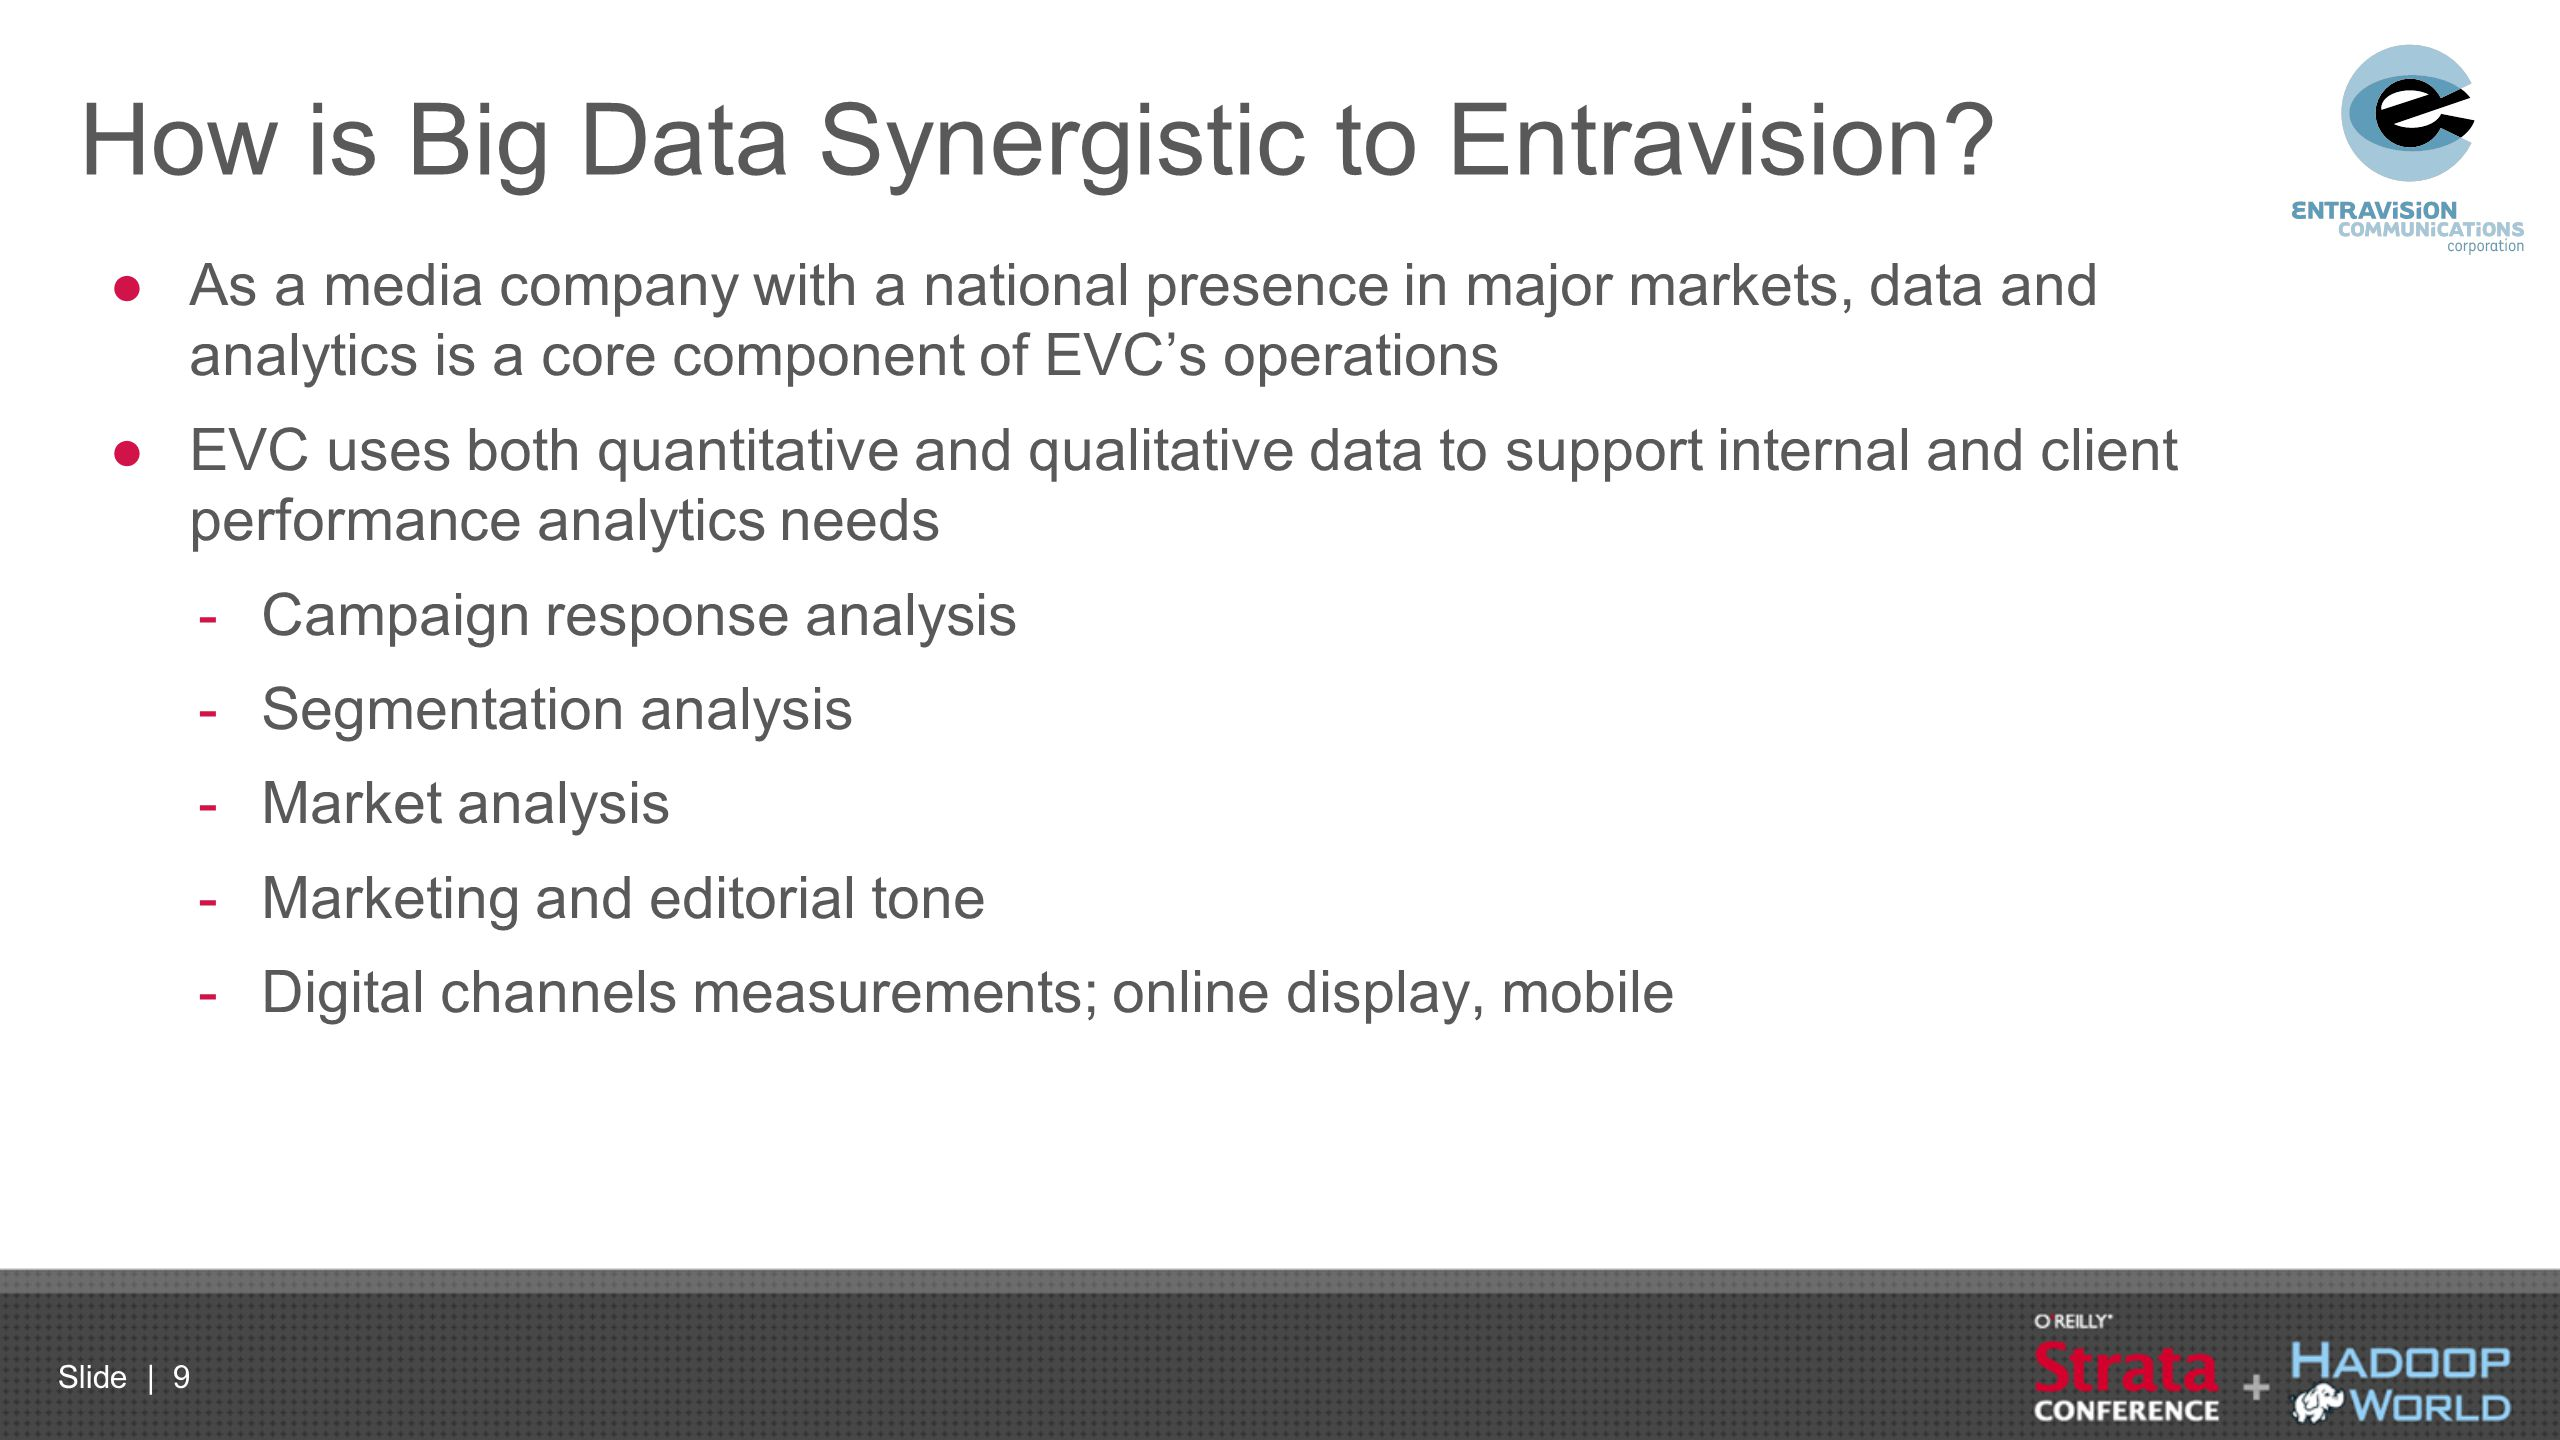 How is Big Data Synergistic to Entravision